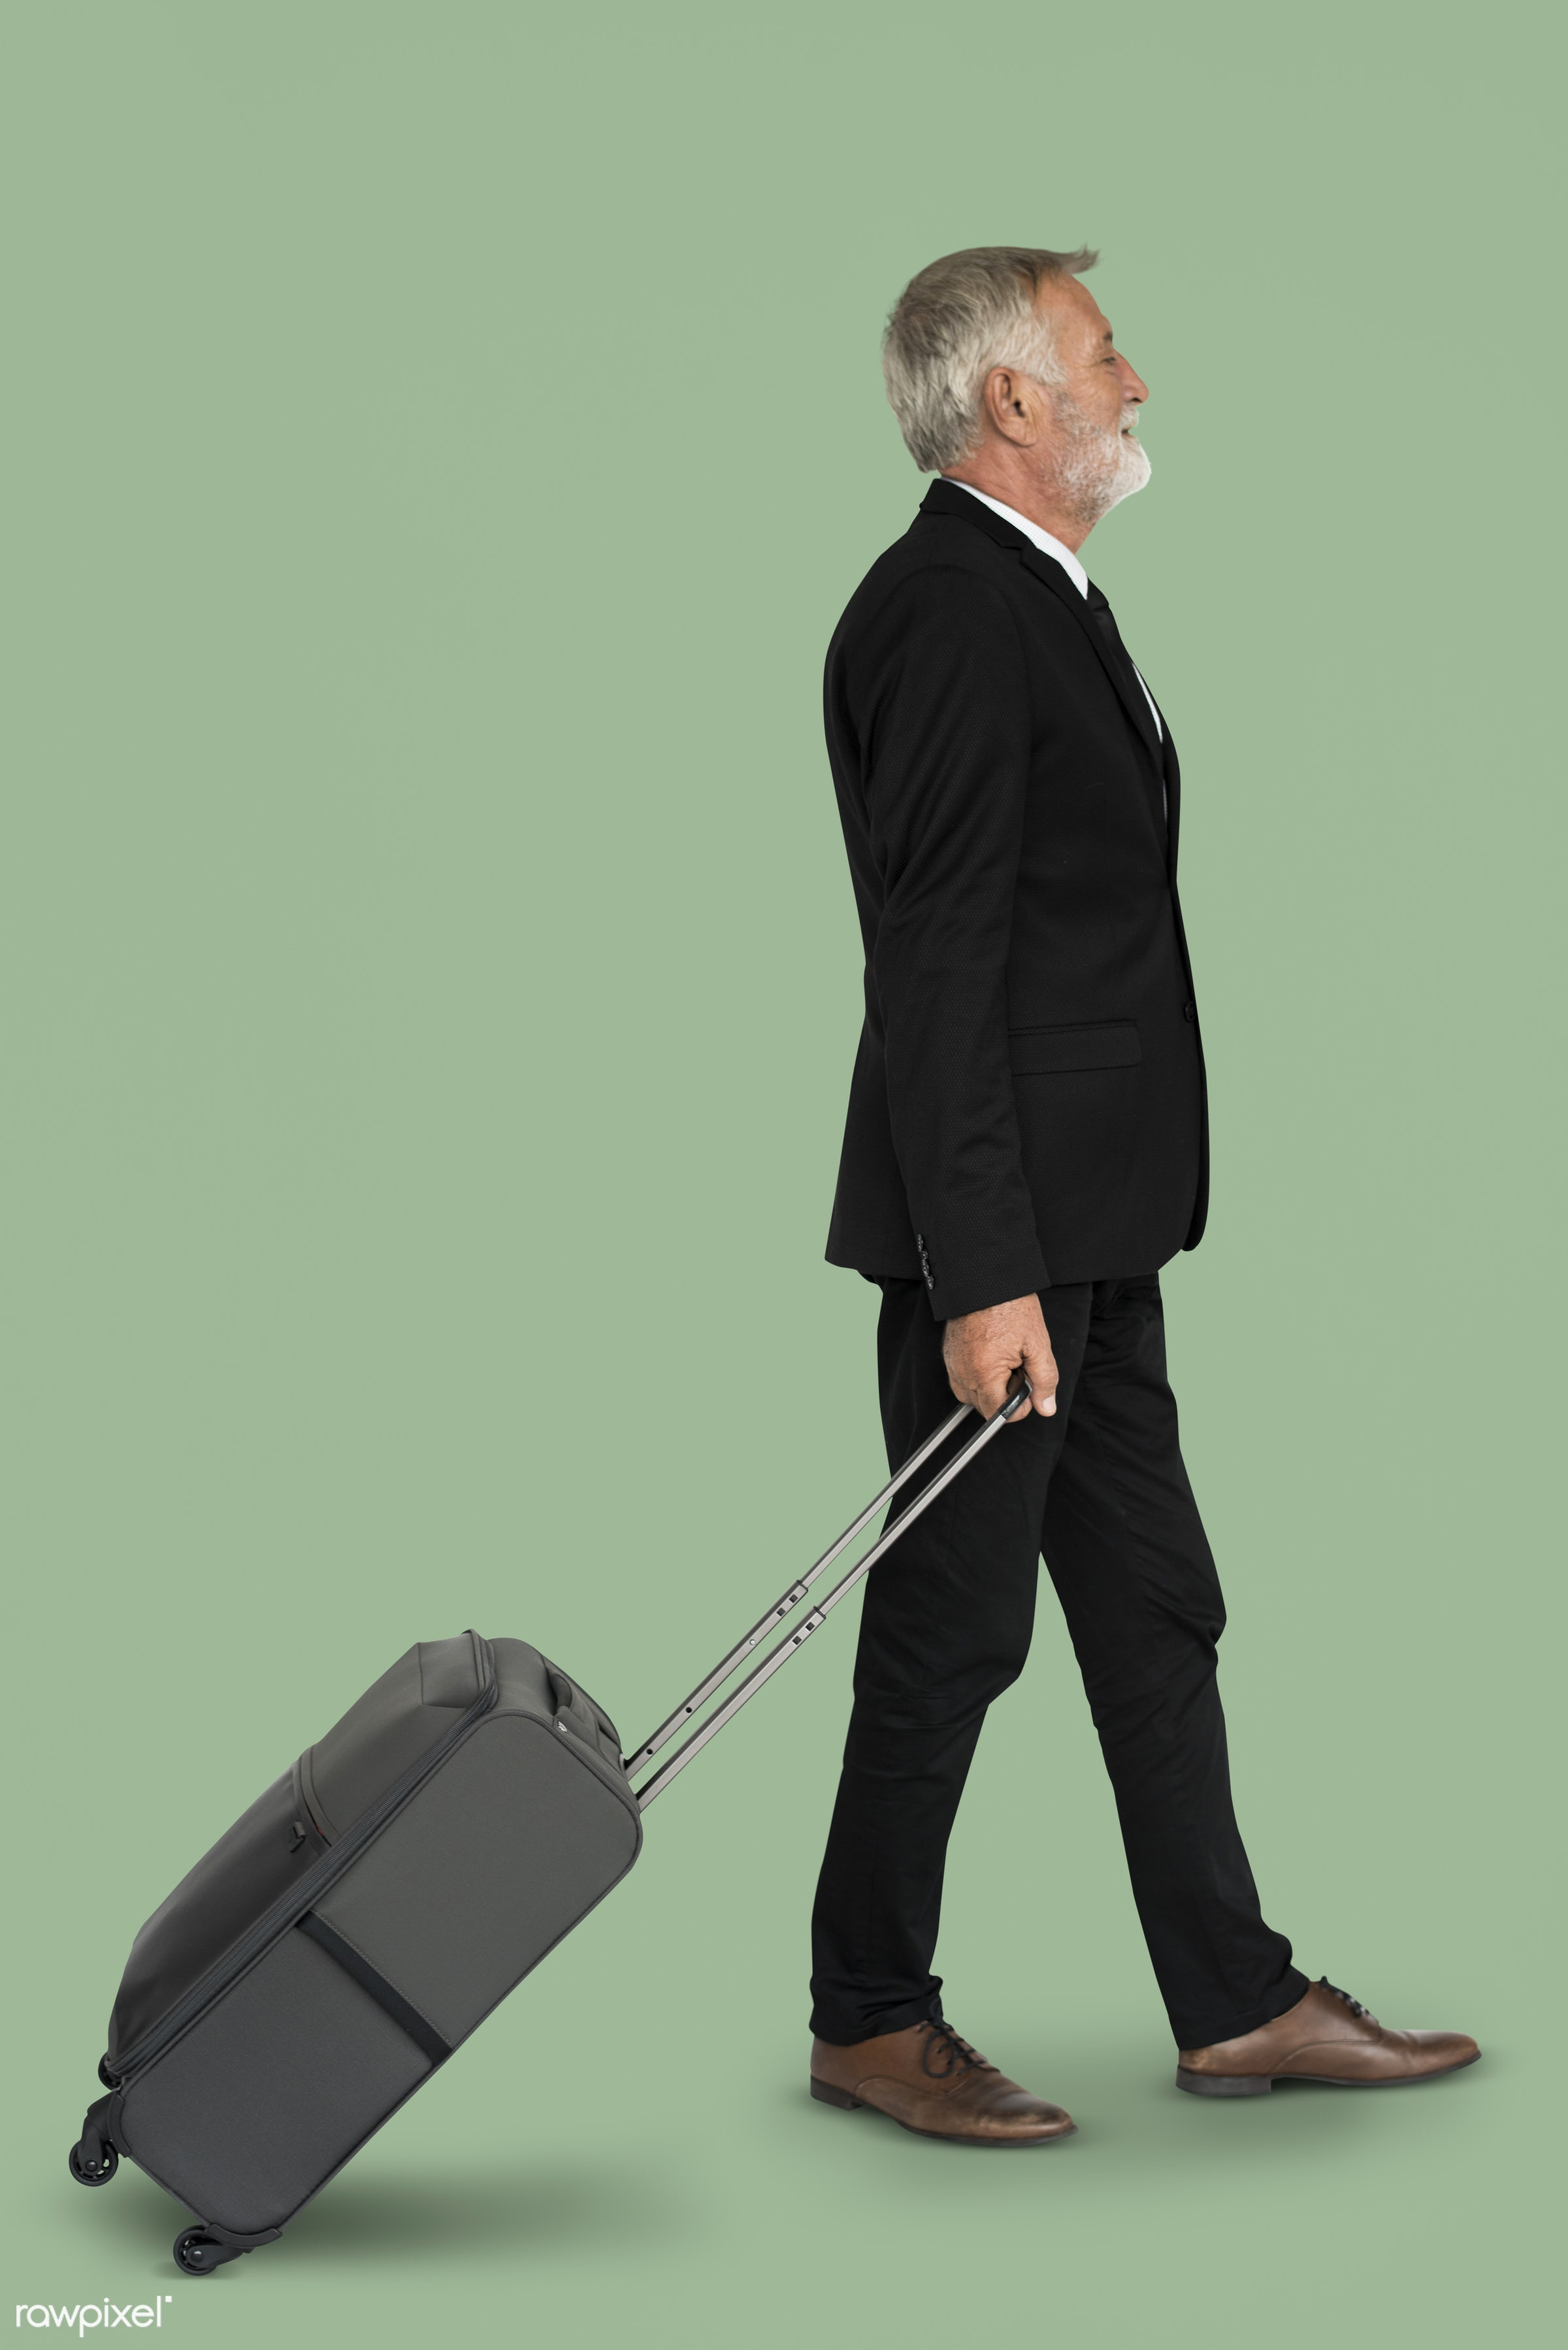 studio, face, person, travel, people, business, businessman, trip, man, isolated, suitcase, green, male, traveler, business...